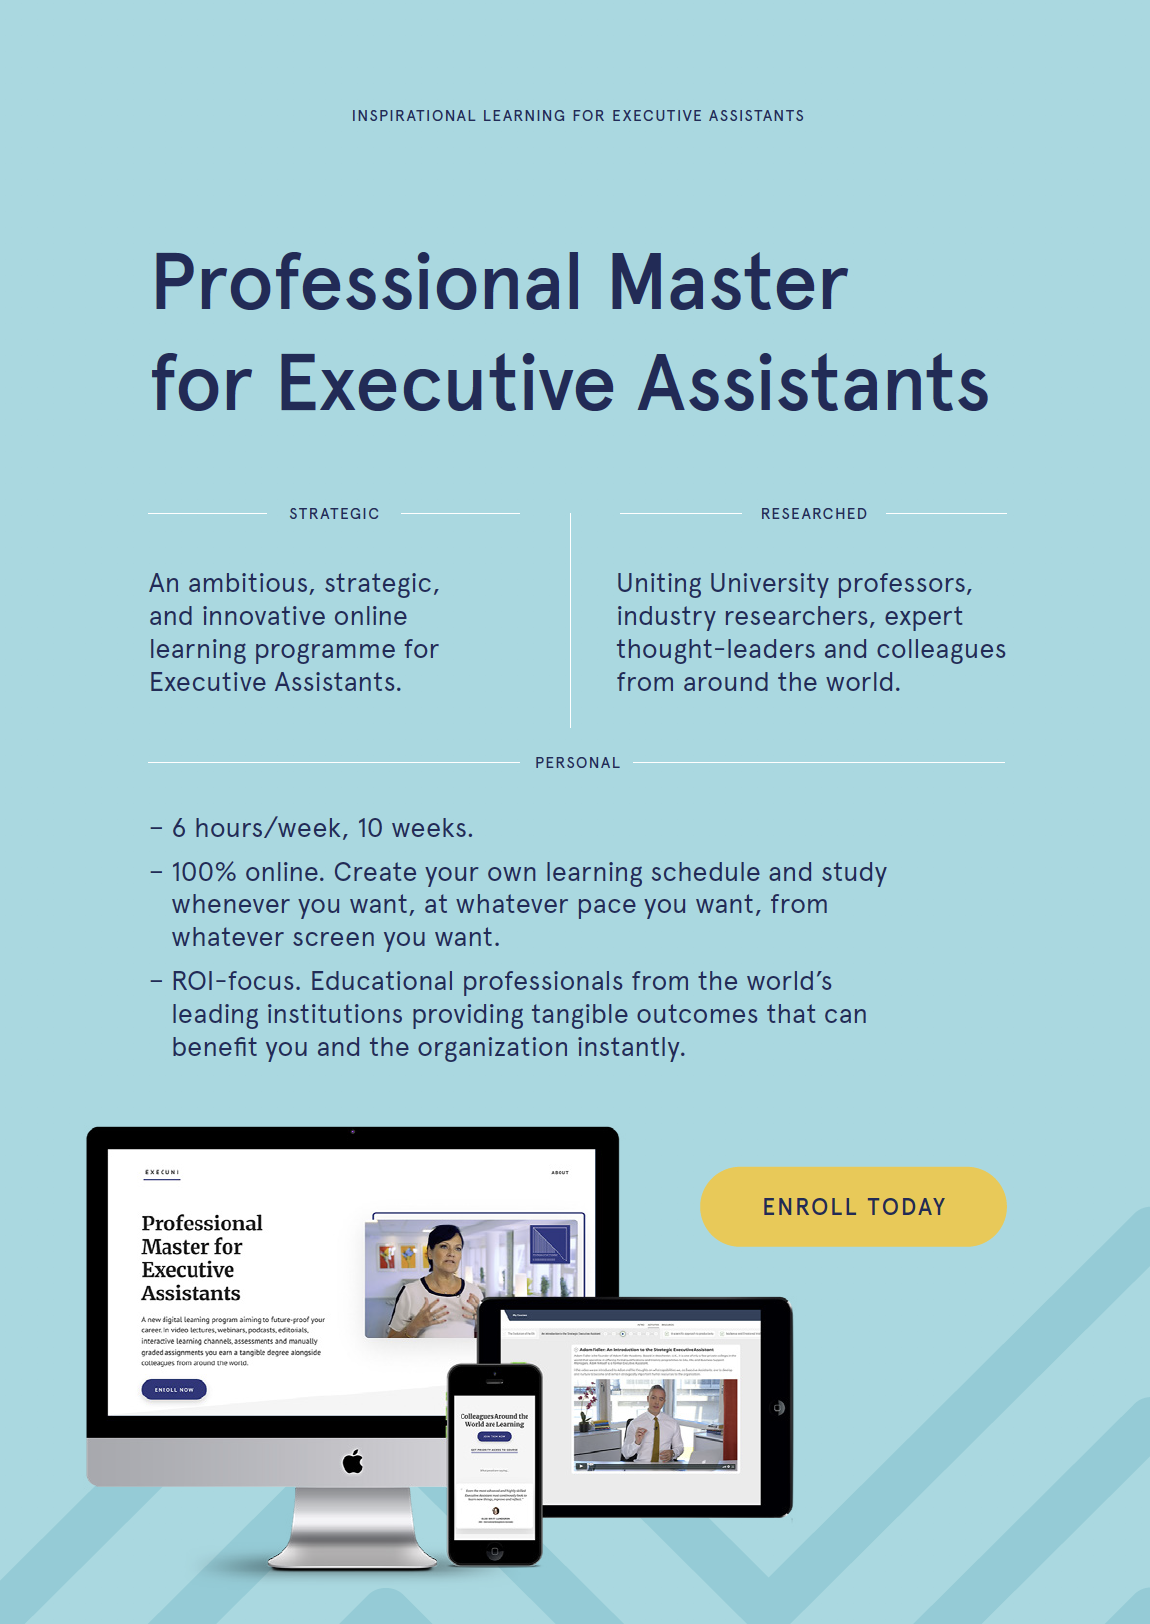 Professional Master for Executive Assistants